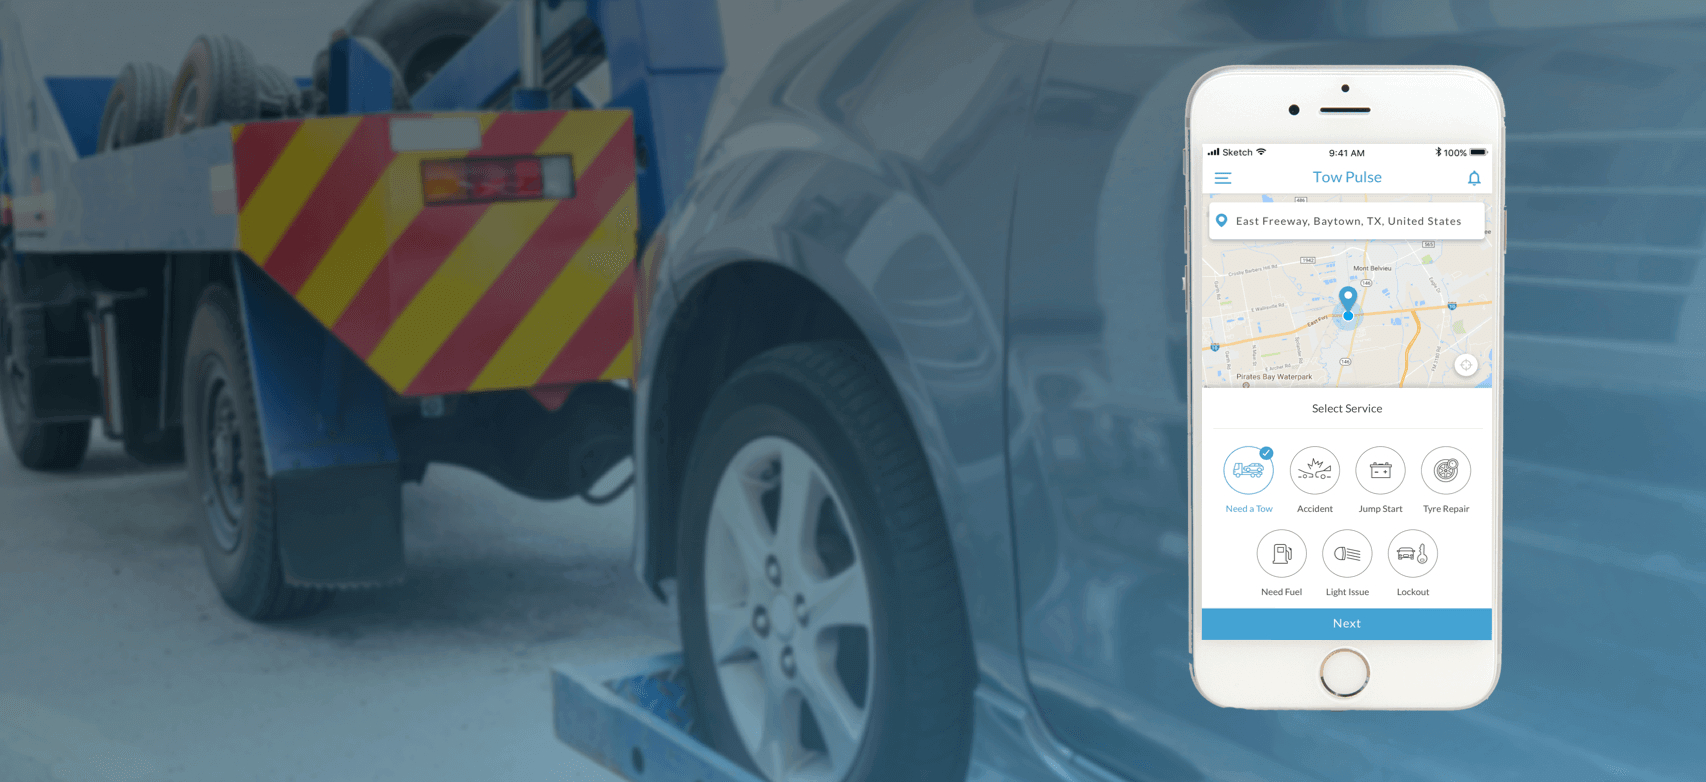 Uber For Tow Trucks App  Roadside Assistance On Demand Inside Towing Business Plan Template